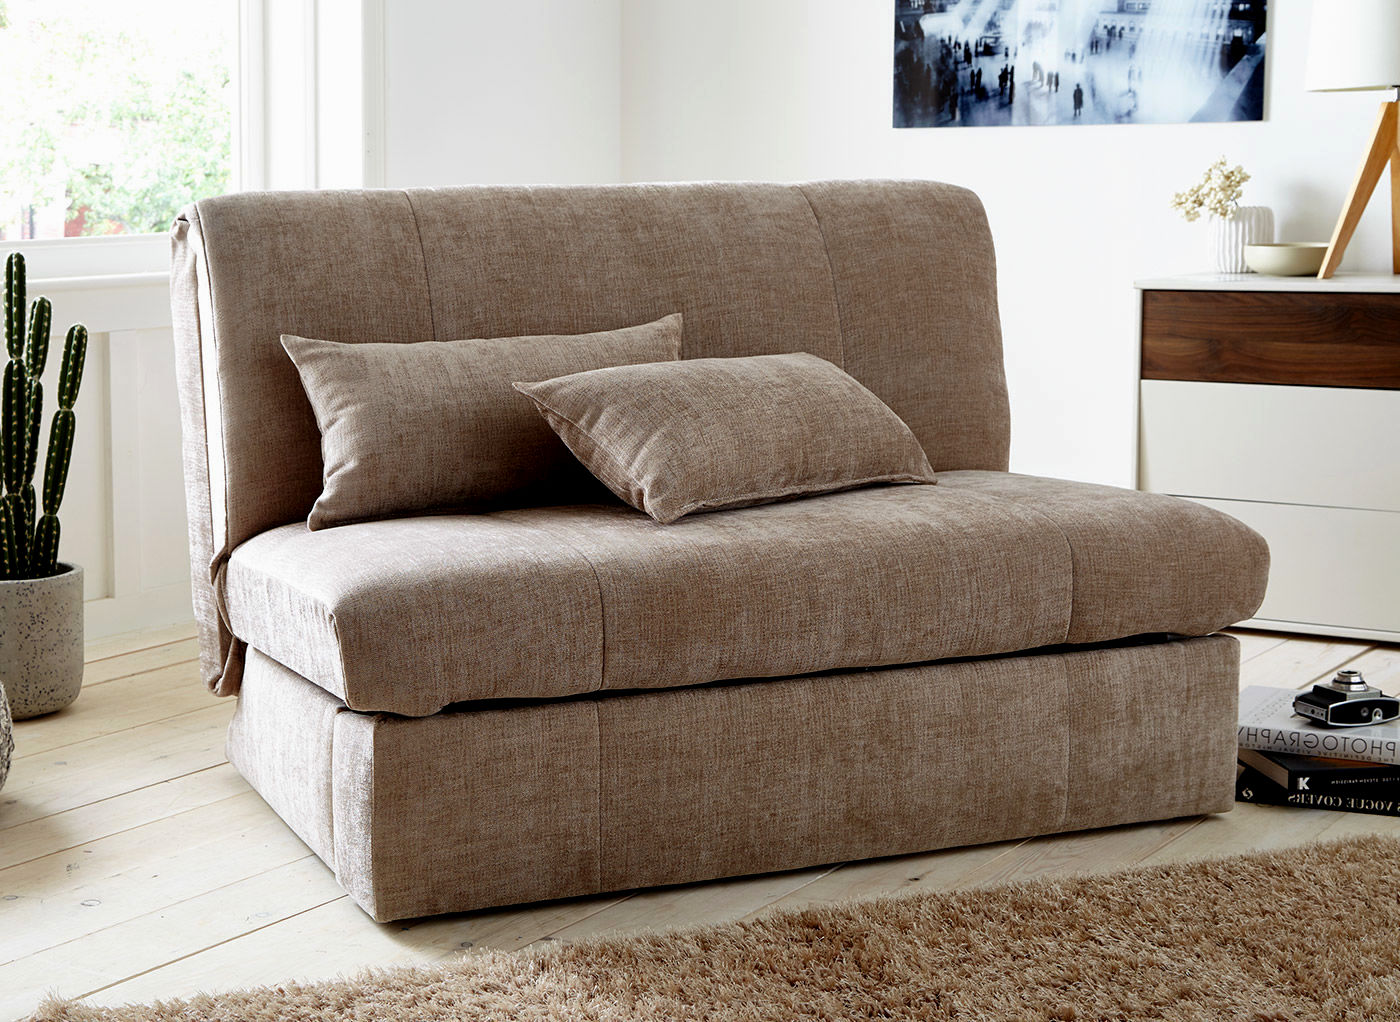 fancy sofa beds cheap online-Inspirational sofa Beds Cheap Inspiration